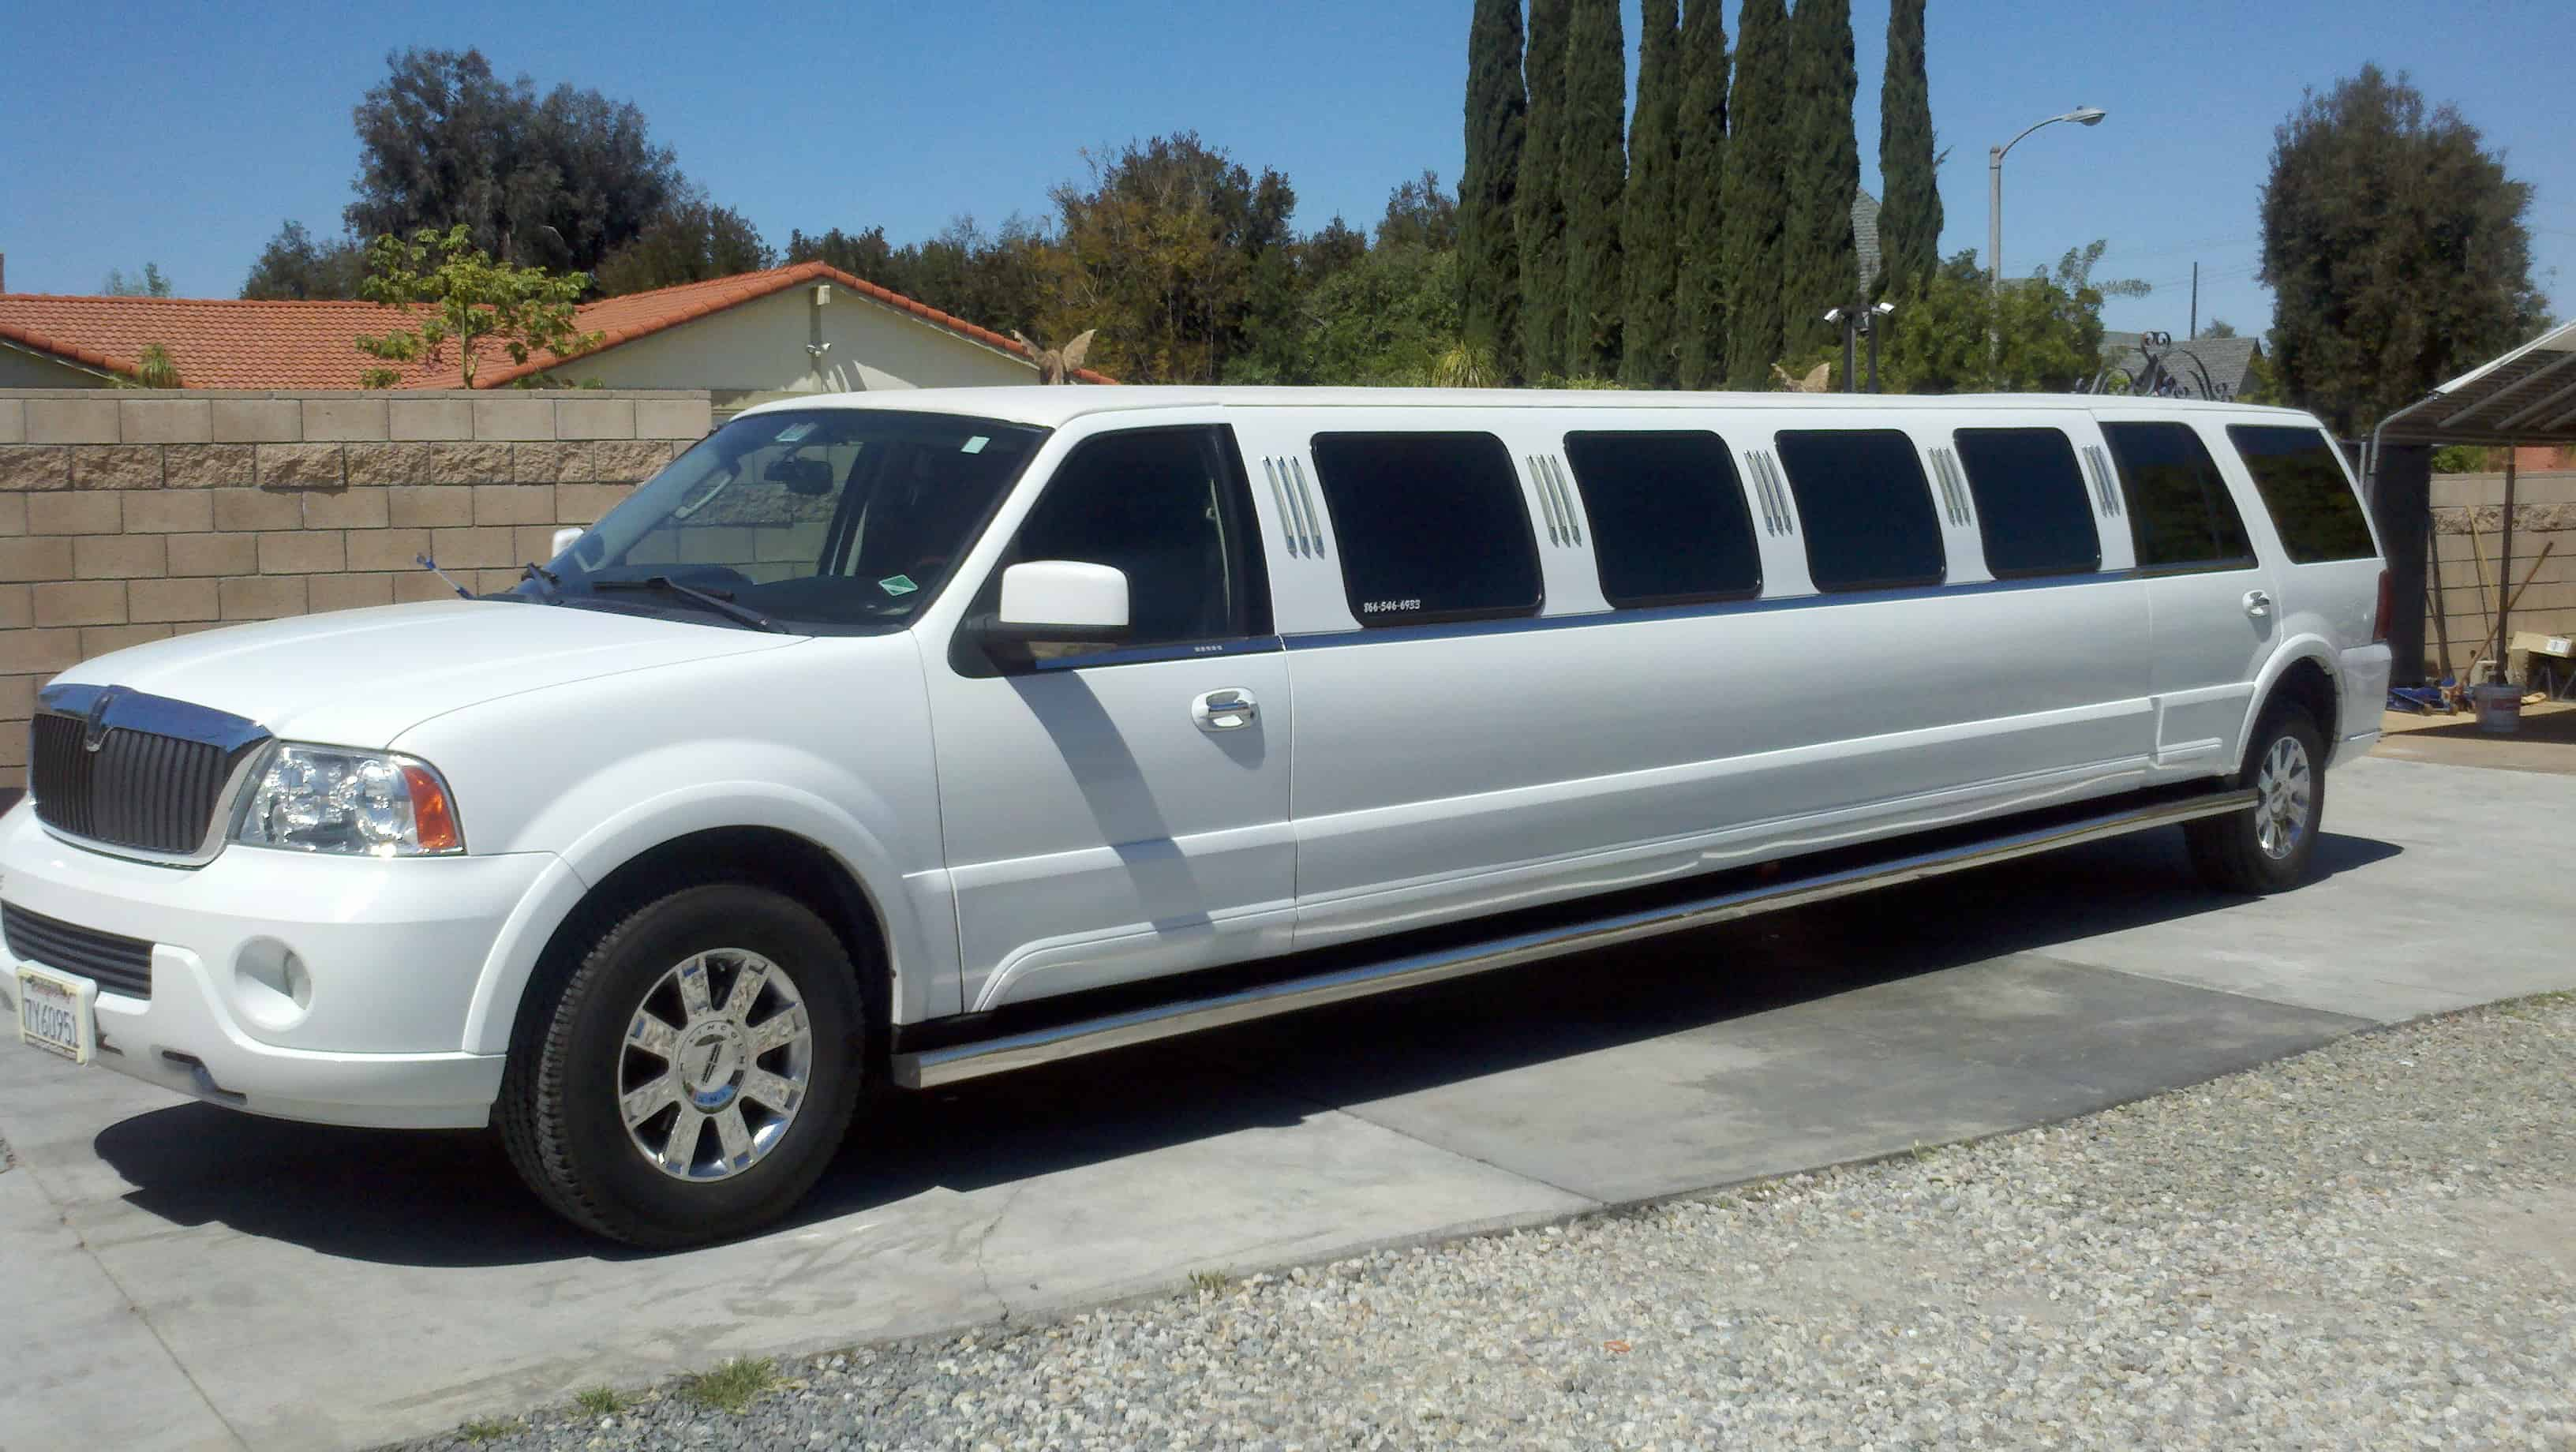 Lincoln Navigator Suv Stretch Limo The Perfect Limo